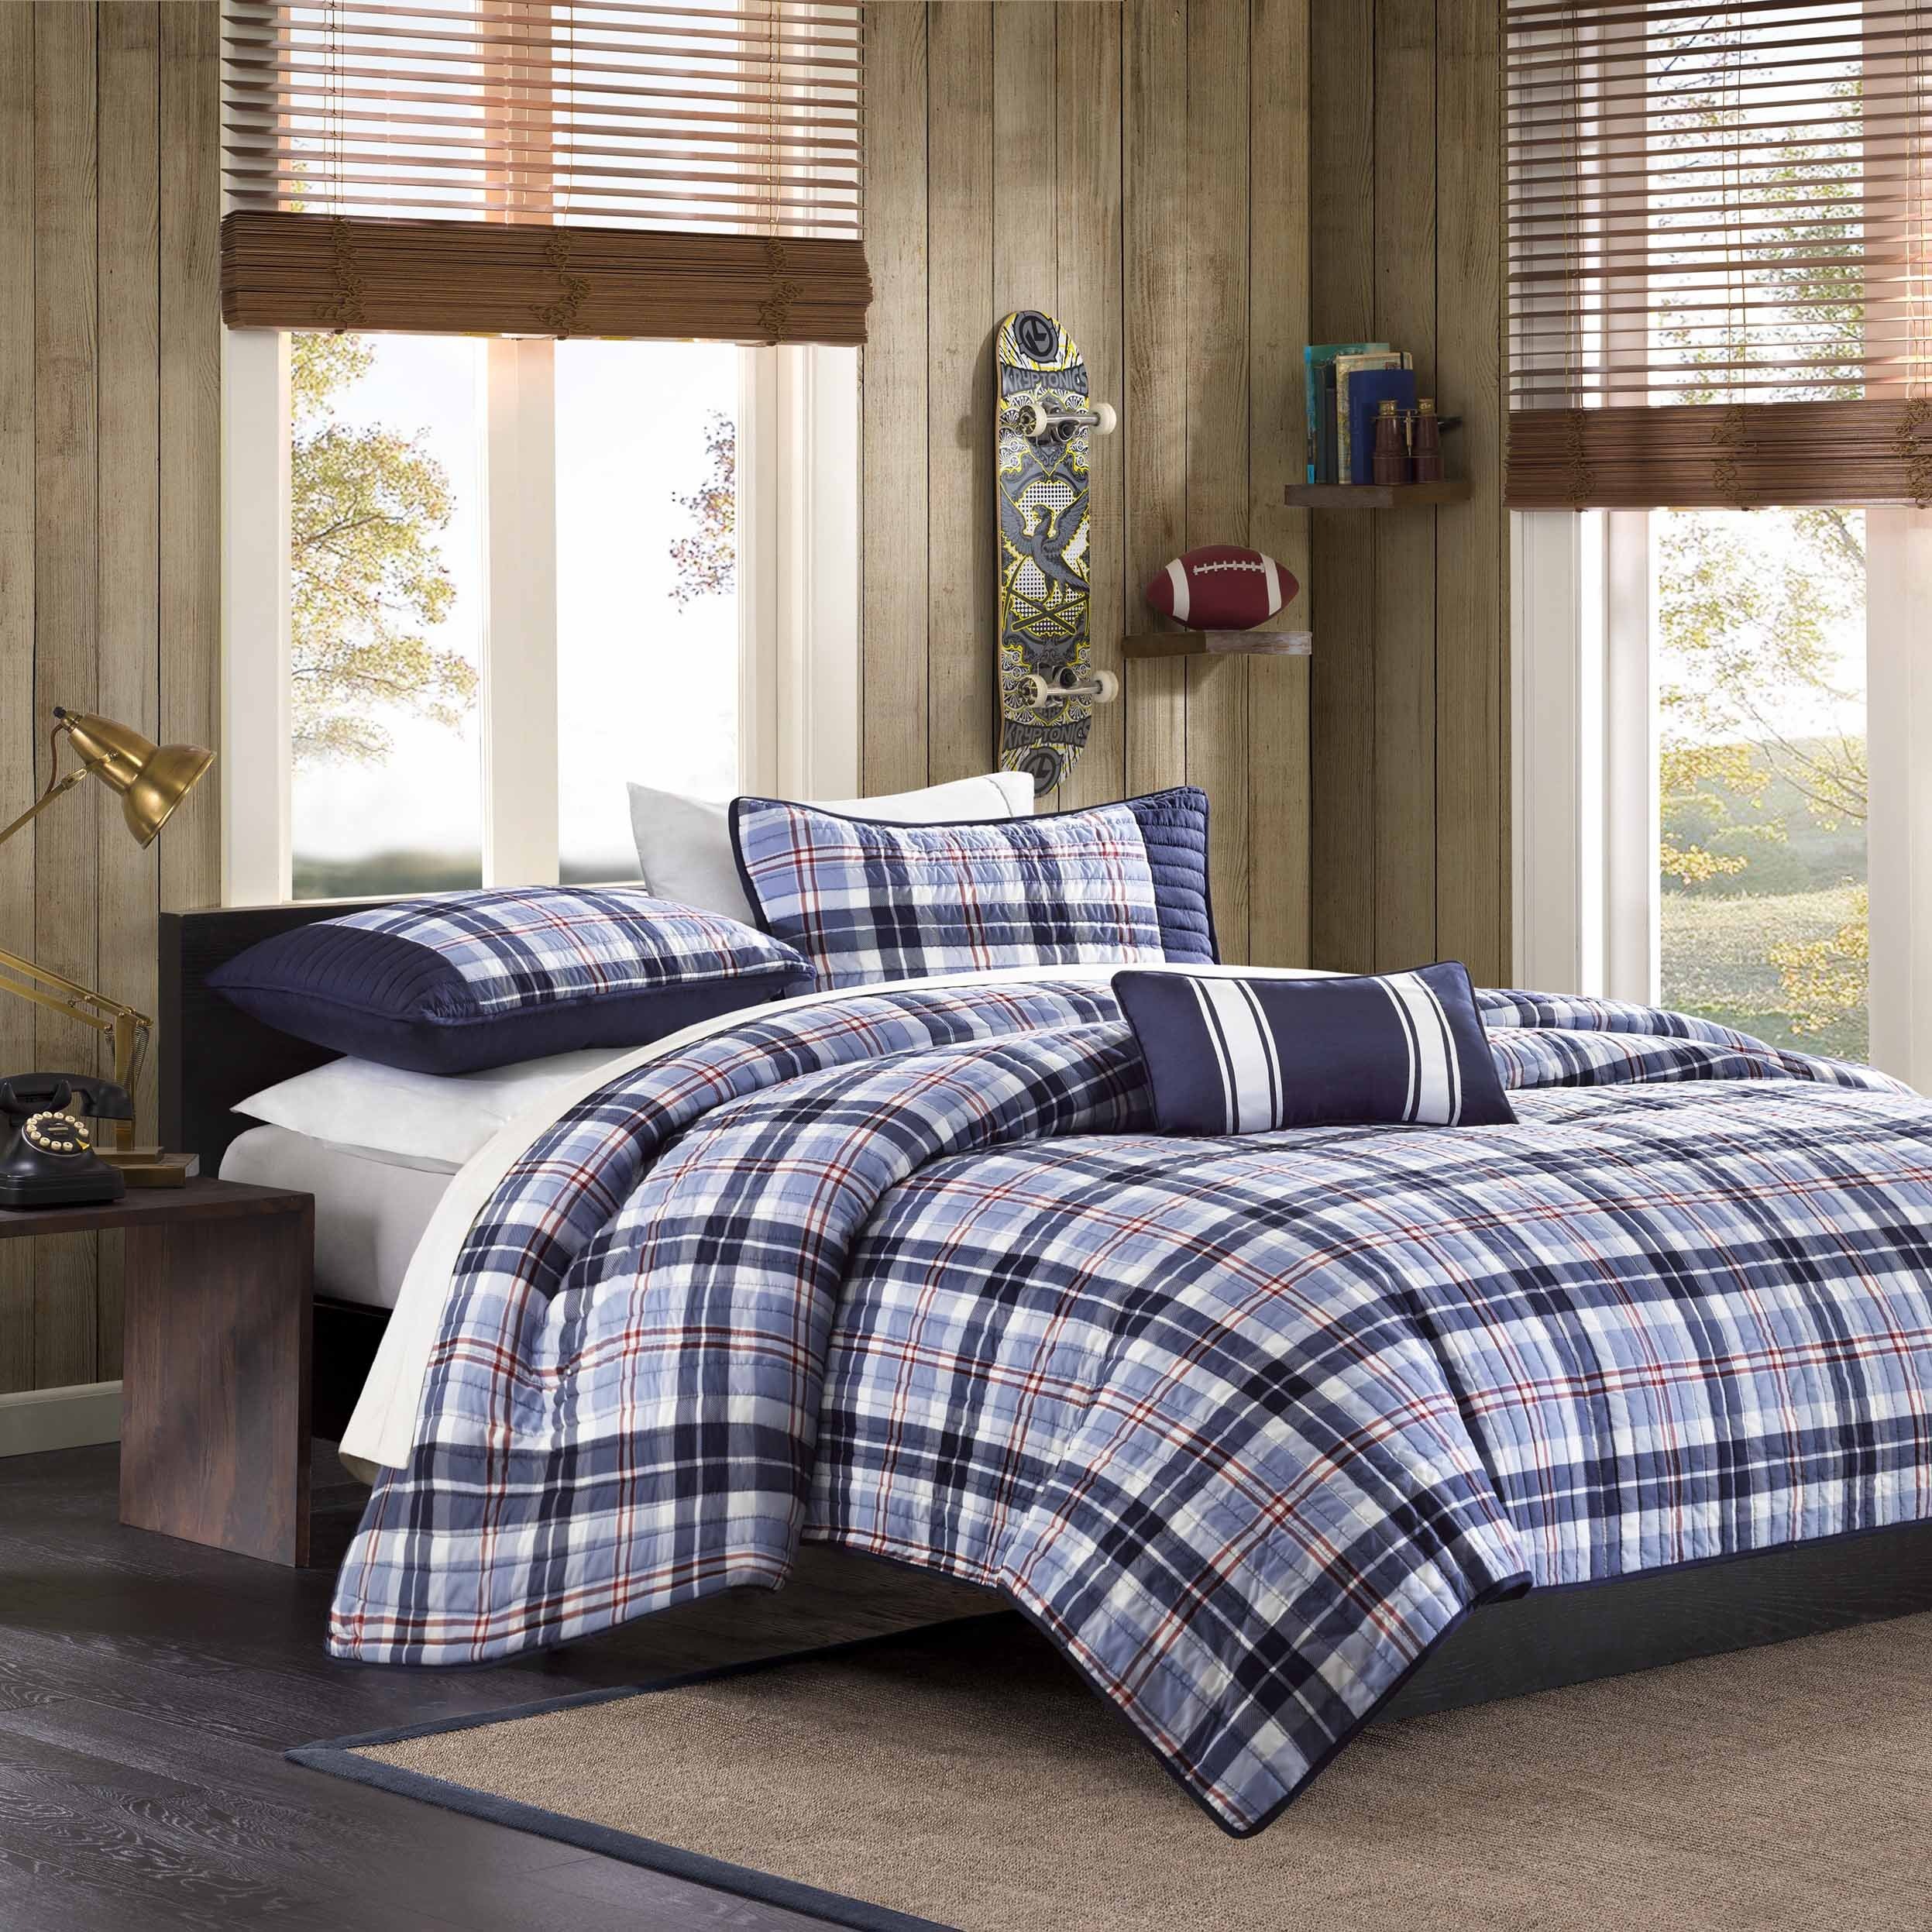 Mi-Zone Elliot Full/Queen Size Teen Boys Quilt Bedding Set - Navy, Plaid – 4 Piece Boys Bedding Quilt Coverlets – Peach Skin Fabric Bed Quilts Quilted Coverlet